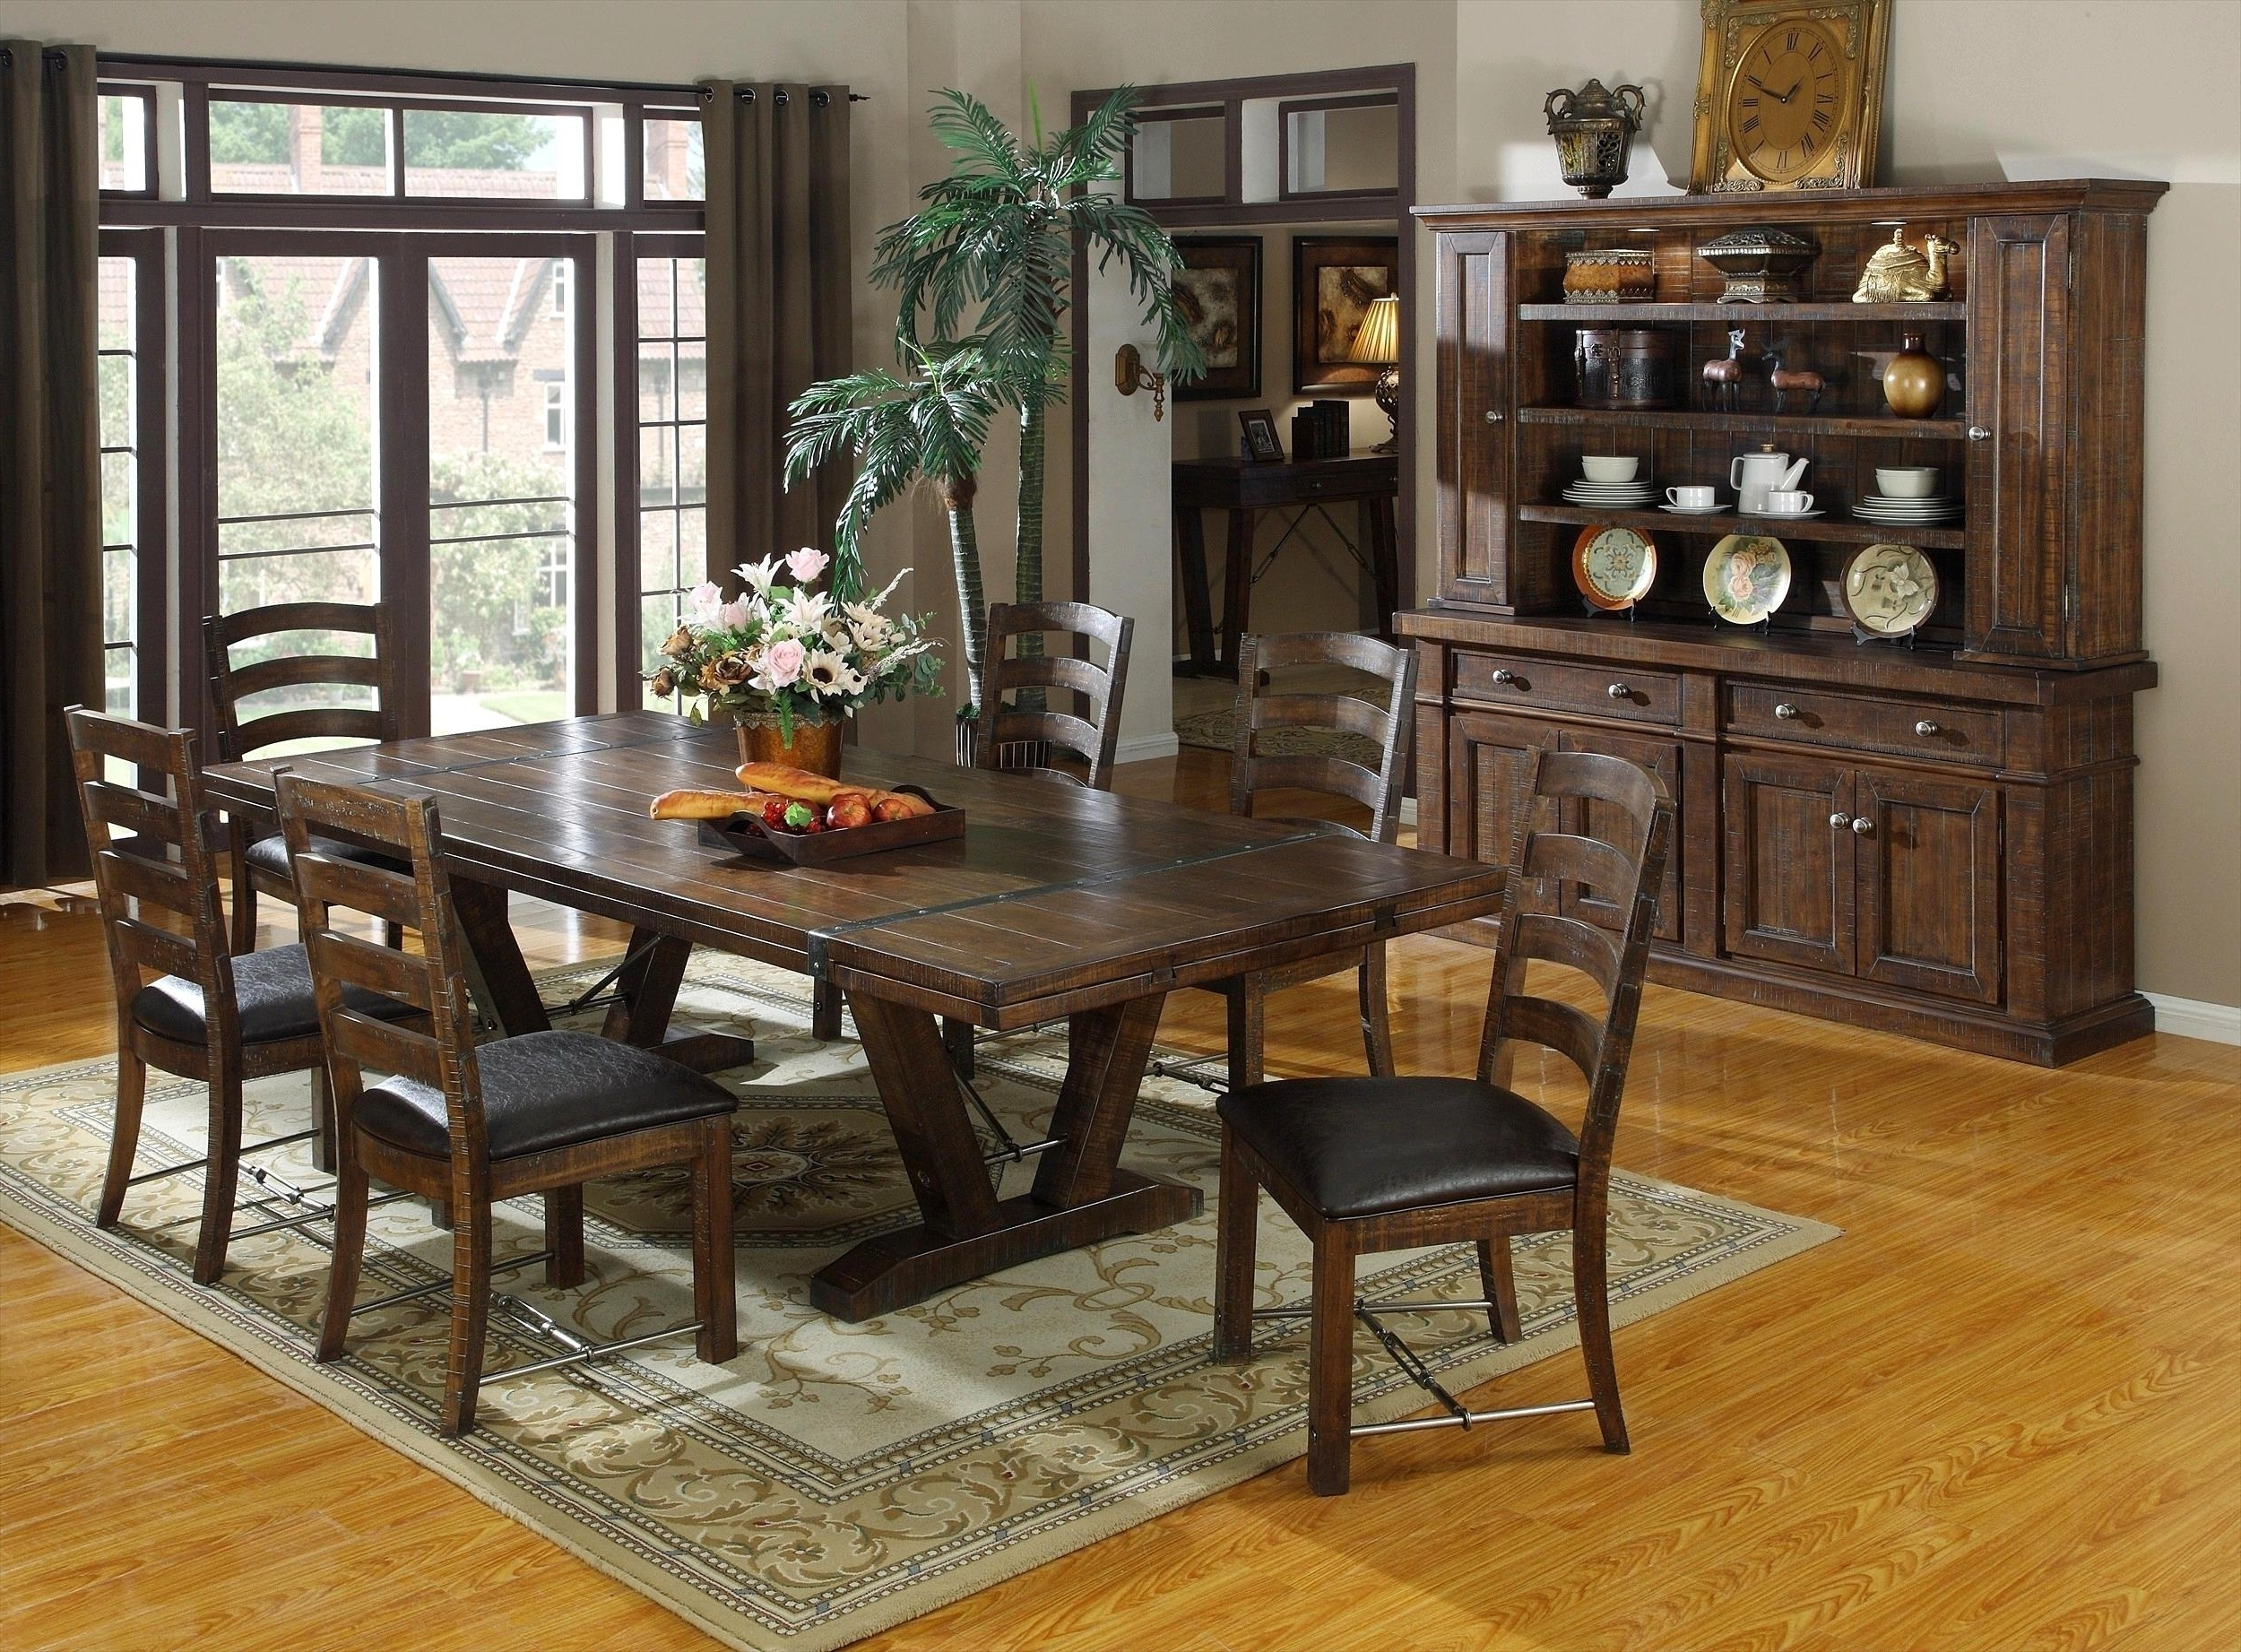 Inspiring Kitchen Dark Brown Wooden Dining Room Dark Brown Polished Intended For Most Current Dark Brown Wood Dining Tables (View 12 of 25)